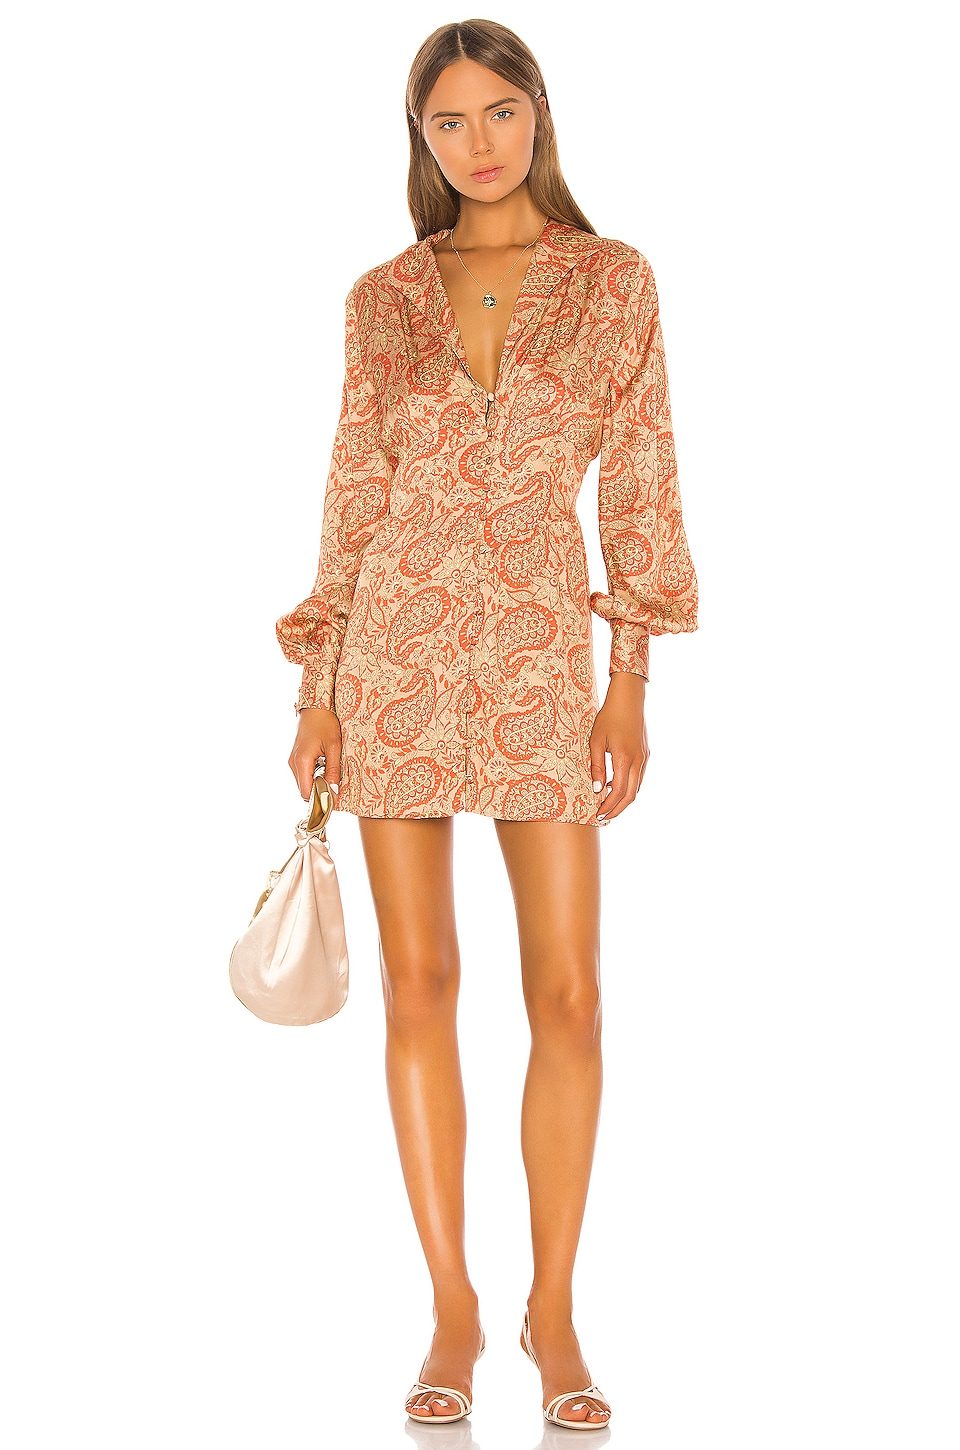 Song of Style Bella Mini Dress in Moroccan Multi